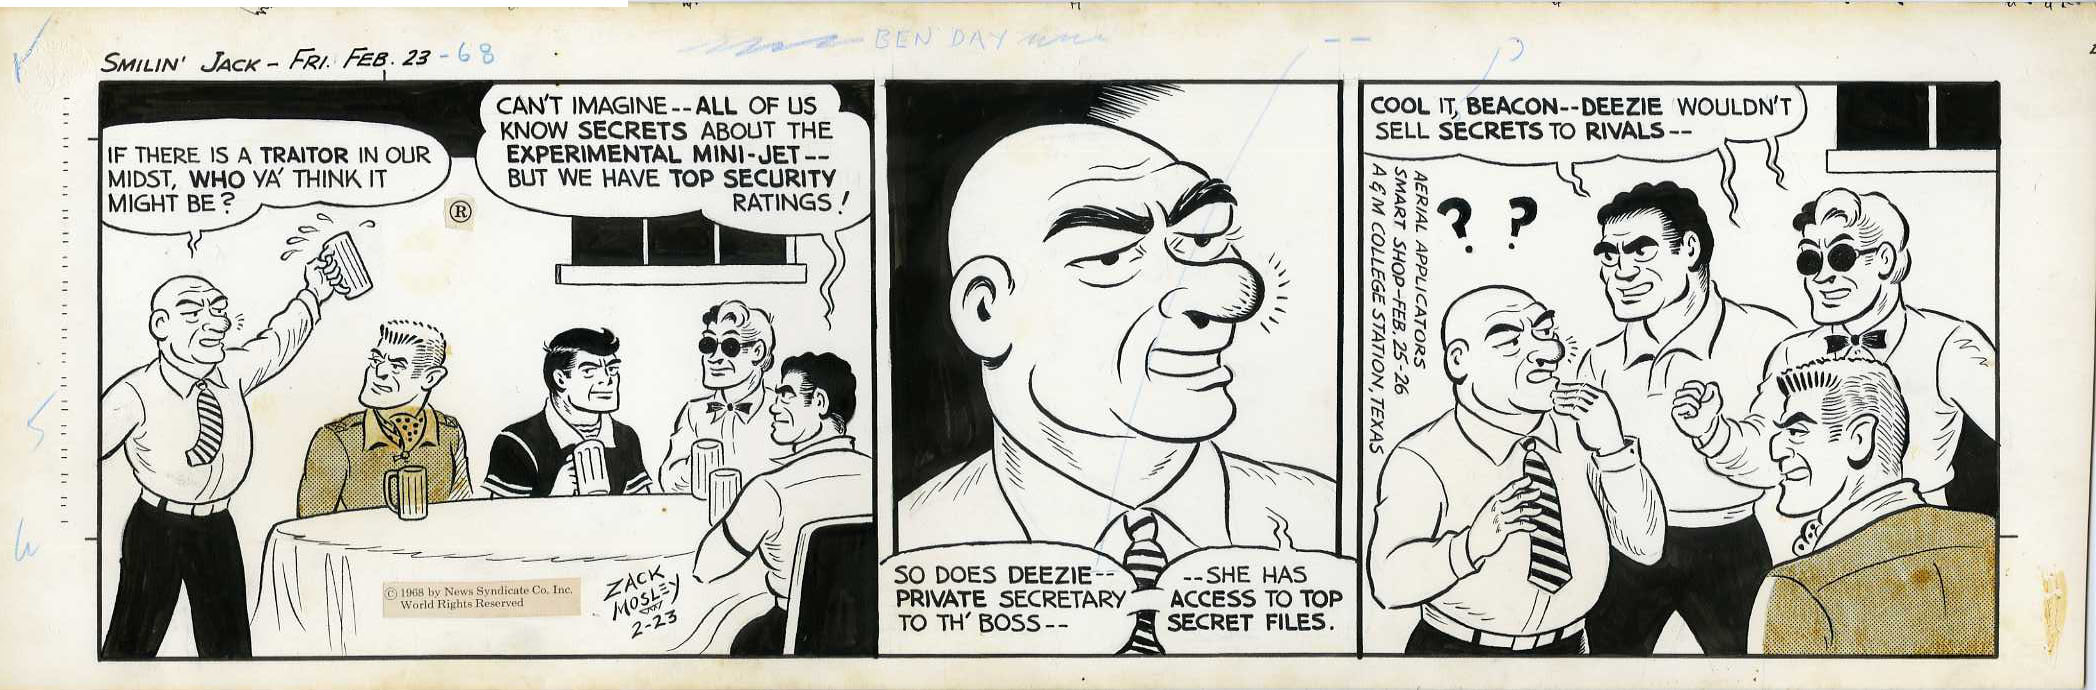 ZACK MOSLEY - SMILIN' JACK DAILY STRIP ORIG ART 2-23-68 COOL IT, BEACON